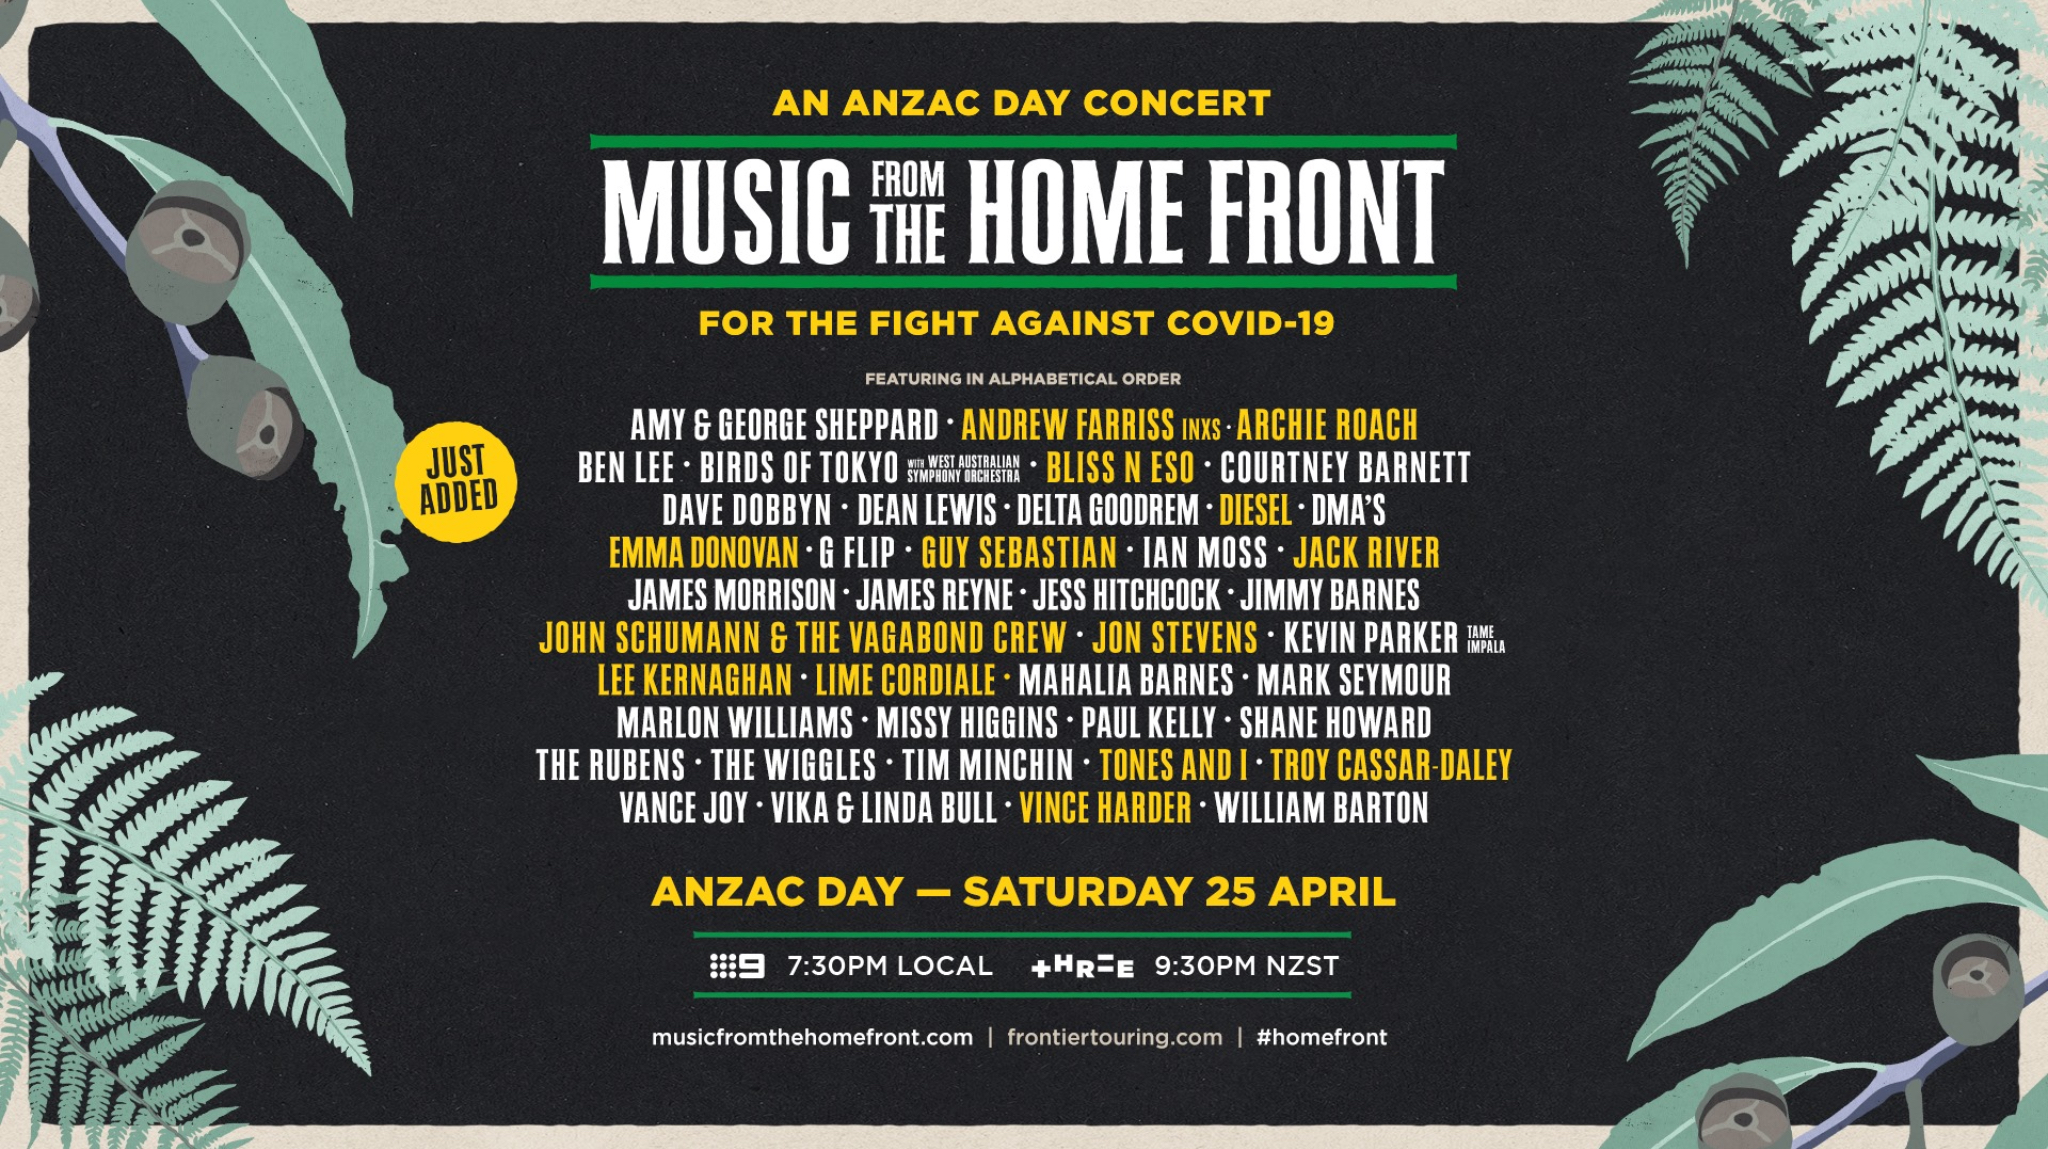 Music From The Home Front - Televised Concert